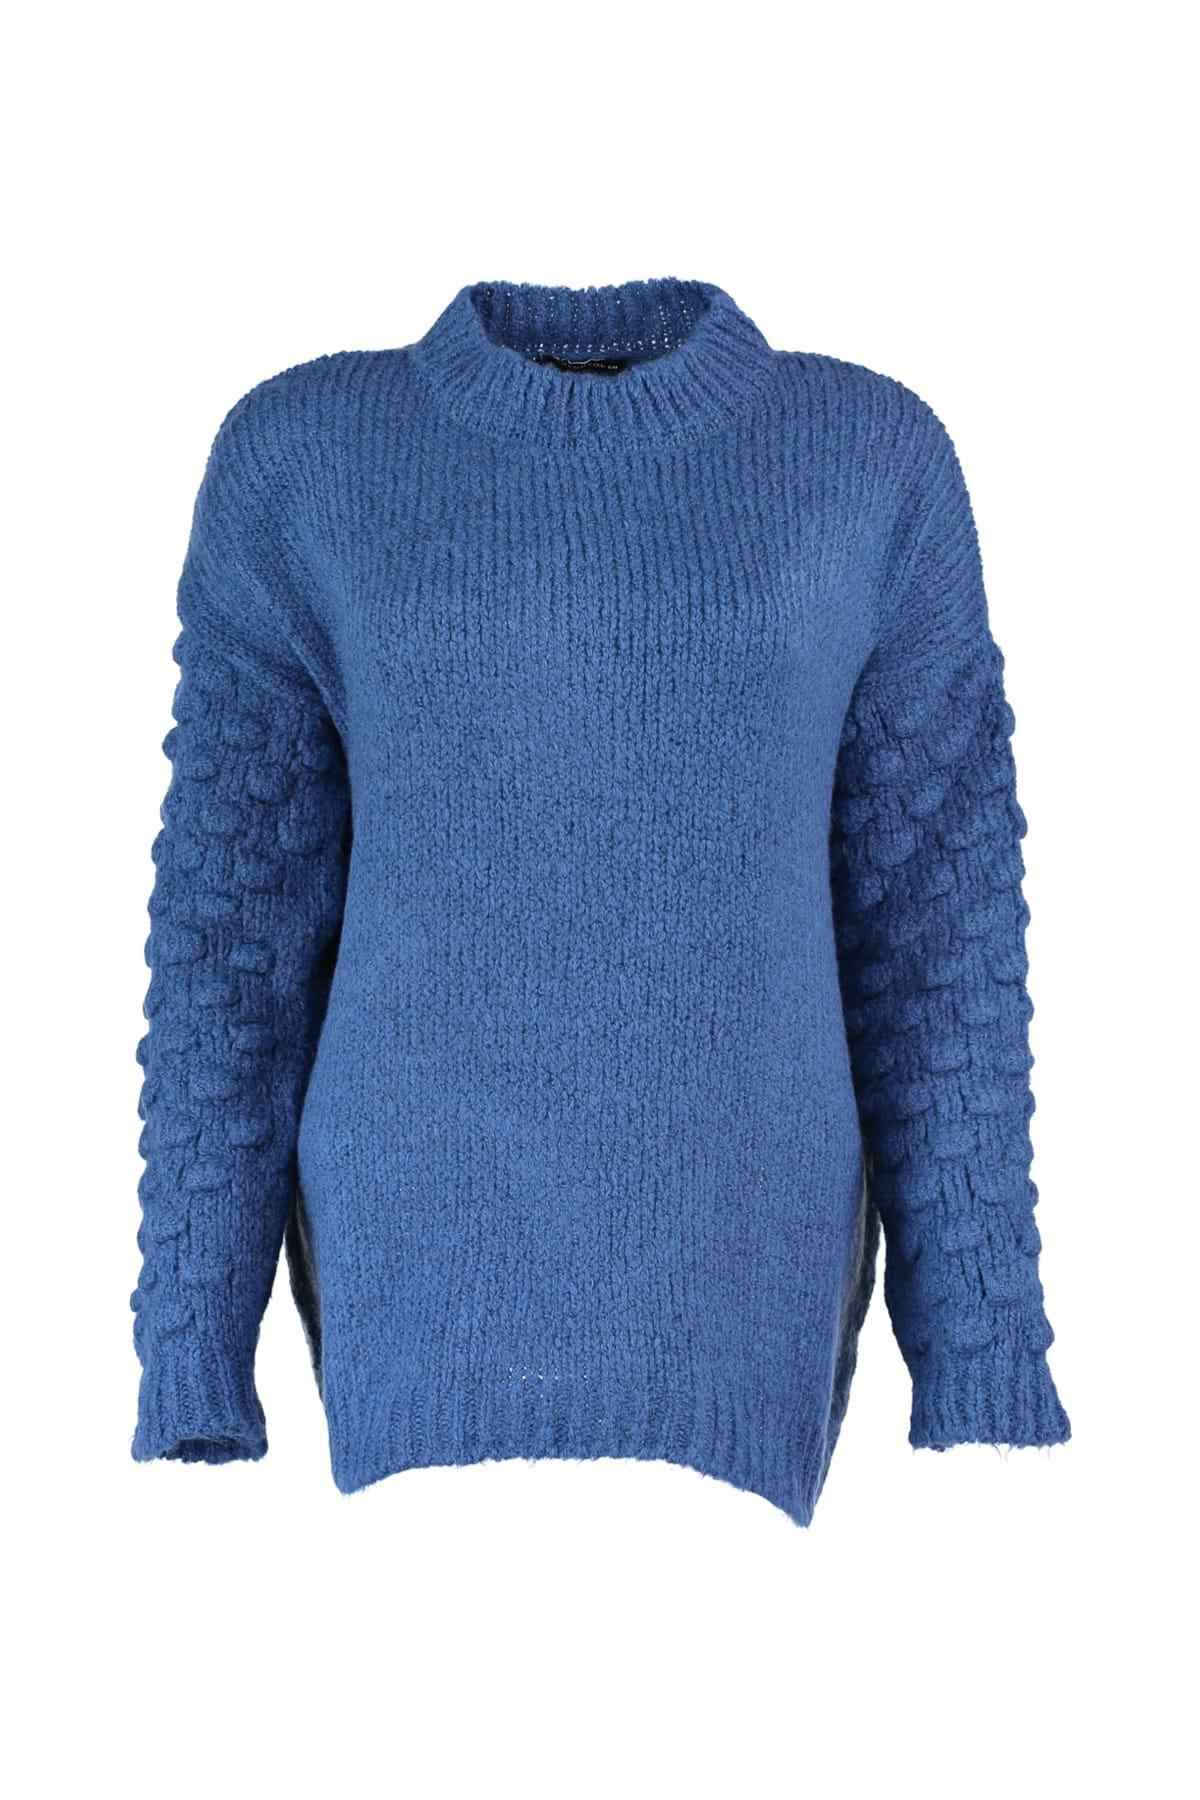 Trendyol WOMEN-Handles Blue Pompom Knitwear Sweater TWOAW20XS0010